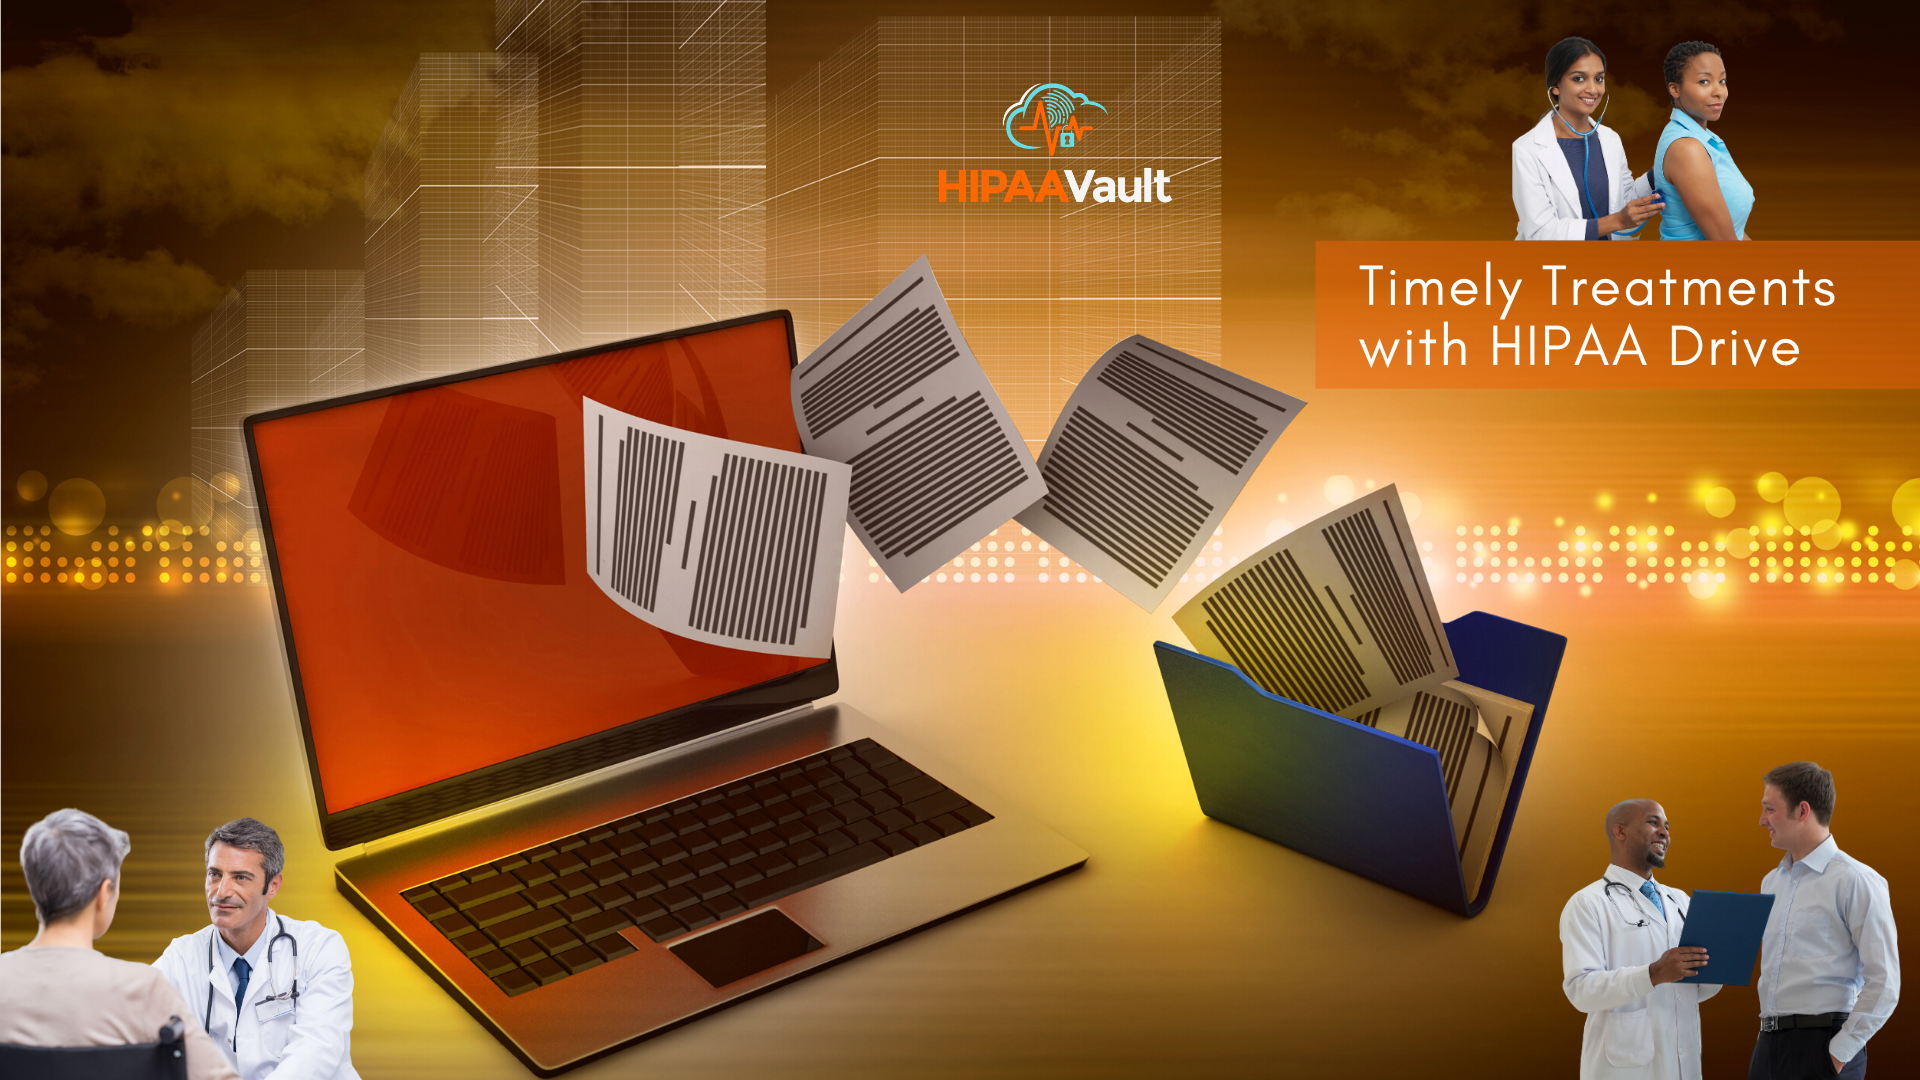 Timely Healthcare with Secure HIPAA Drive